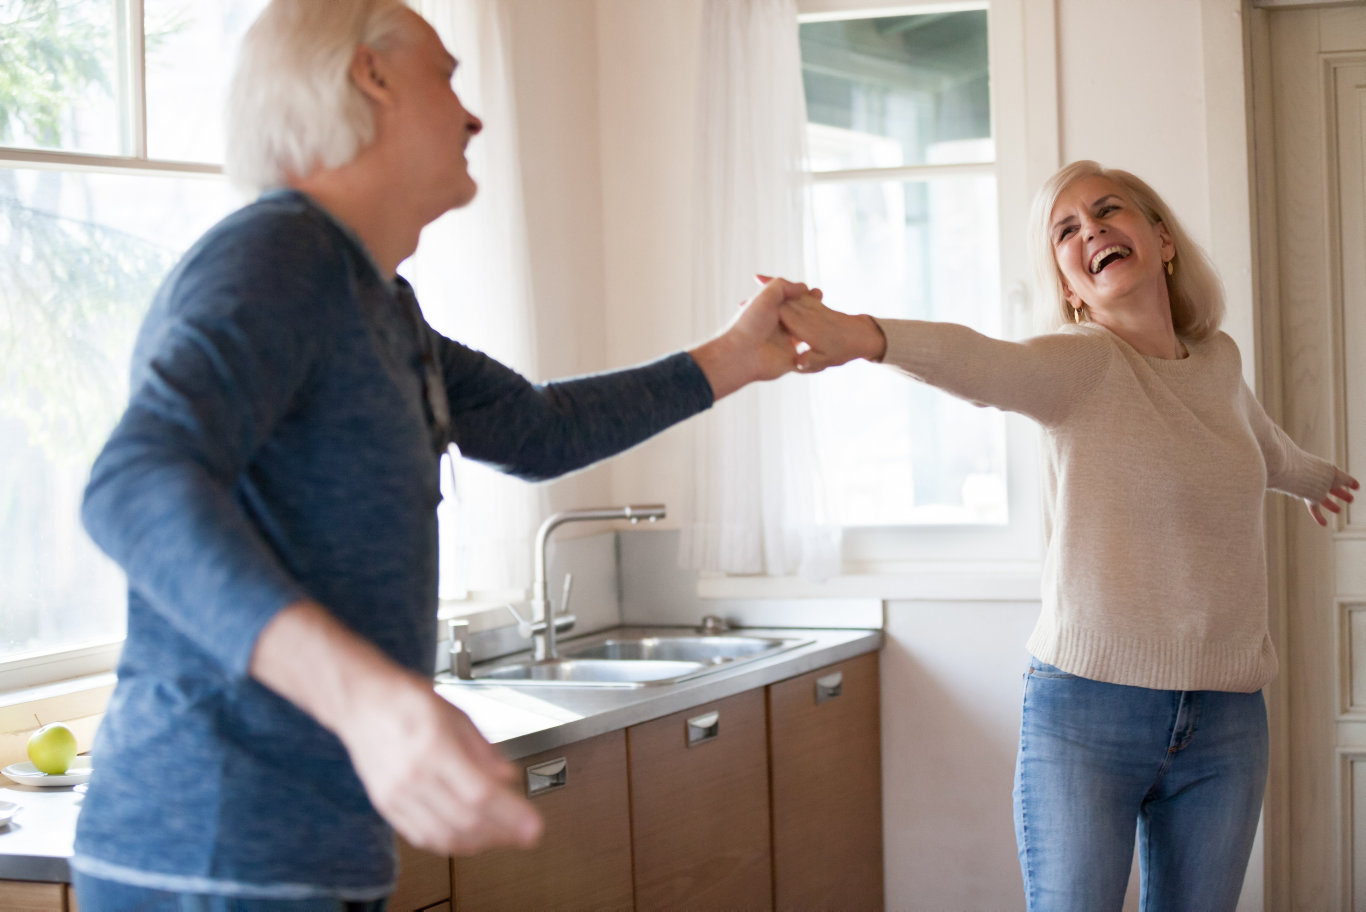 Whether you're moving into a new home or a retirement village, decluttering before you make the move will save you time, money and a lot of effort.